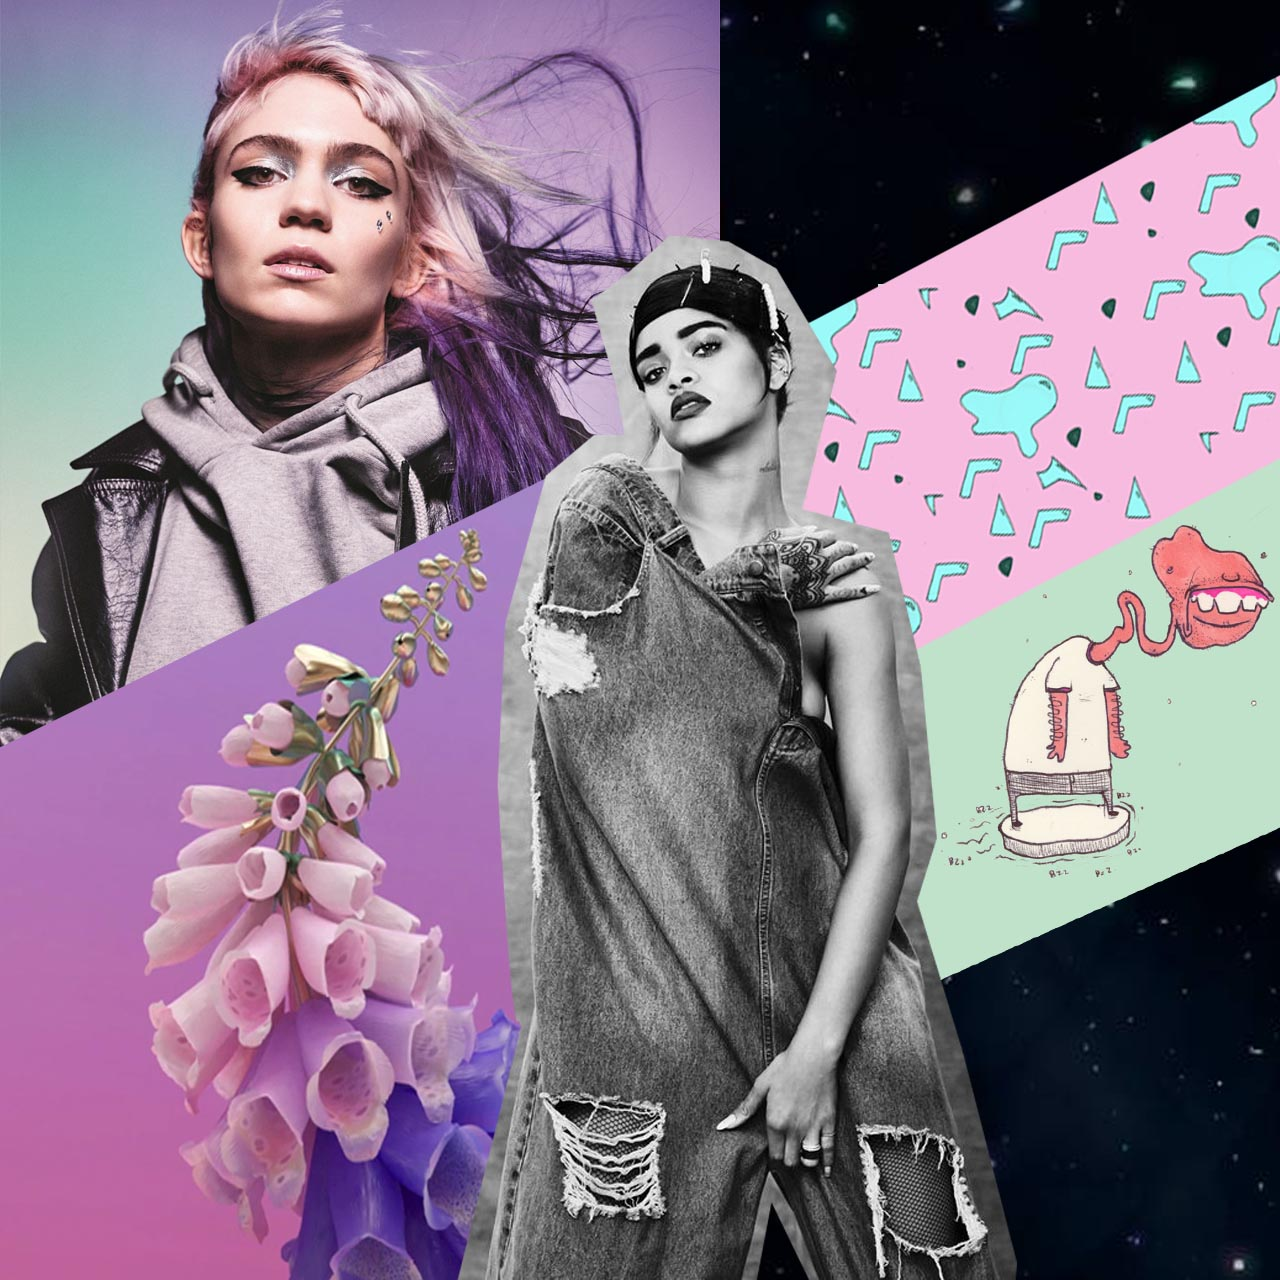 grimes, rihanna, m83, music, fashion, hub clothing, flume